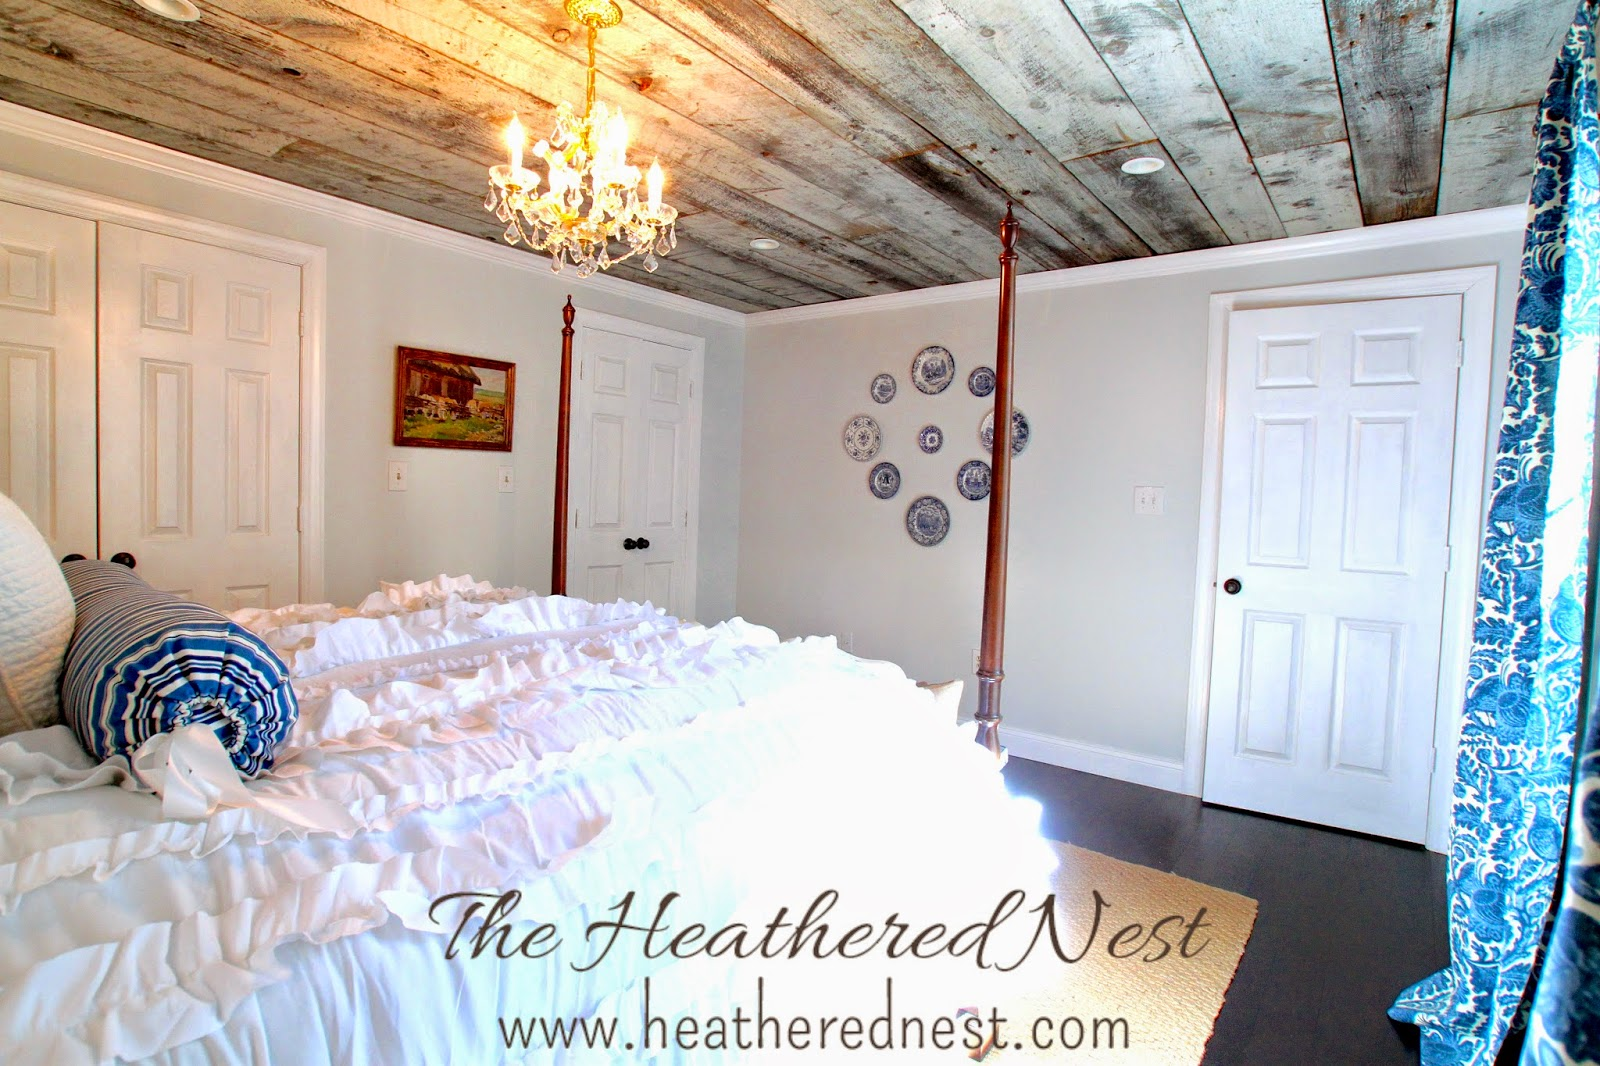 heathered nest guest room, barnboard ceiling, blue and white bedroom, flow blue plates, modern country bedroom